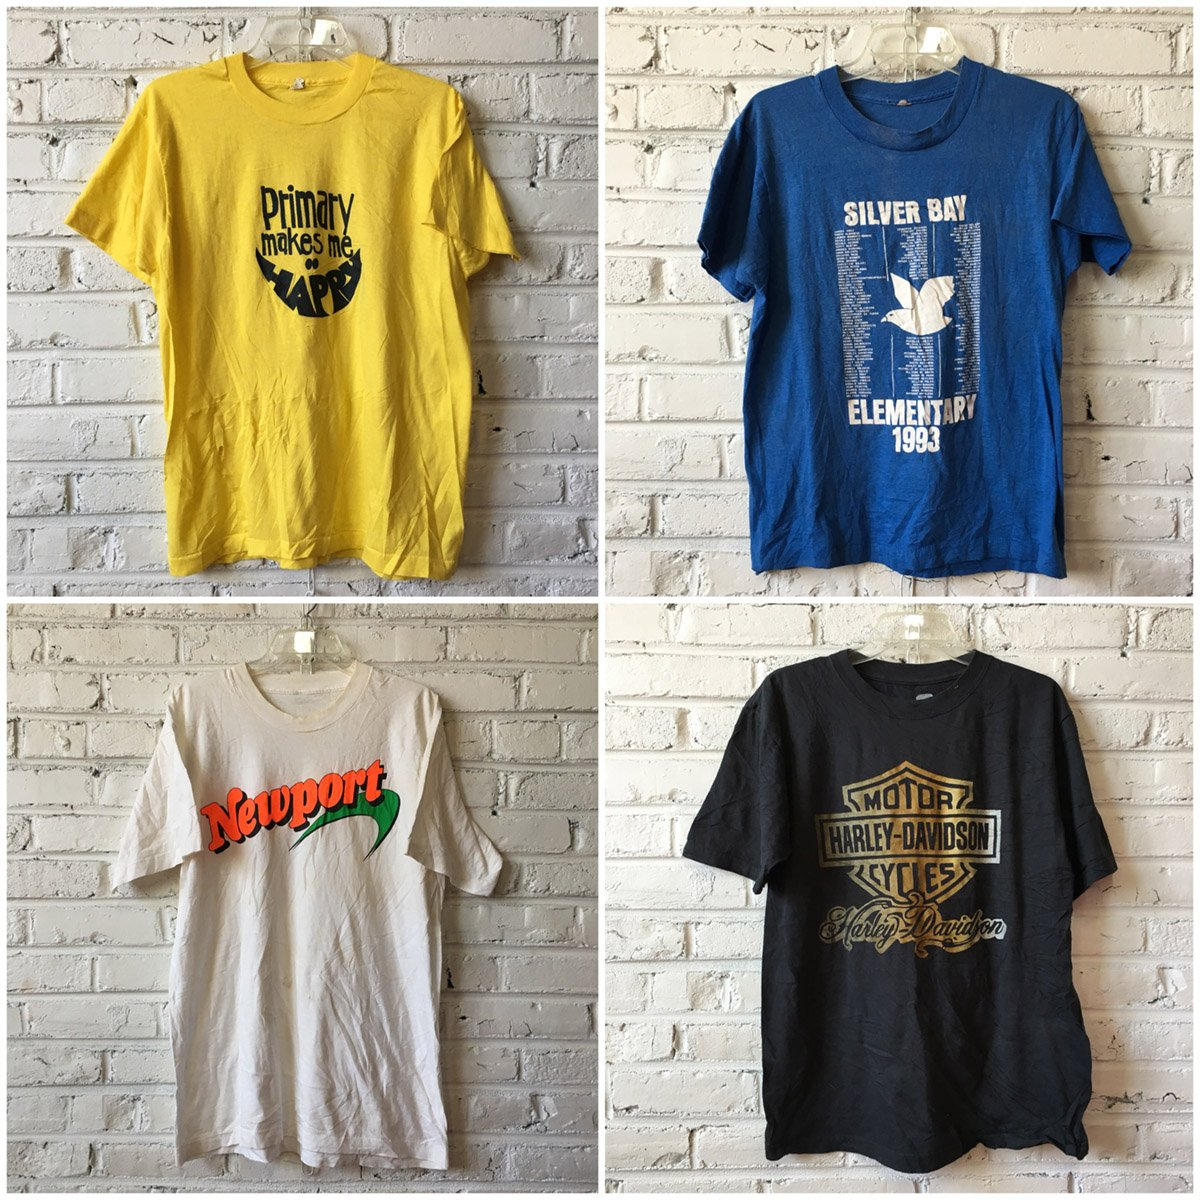 Vintage T-shirts by the Bundle: Bulk Vintage Clothing